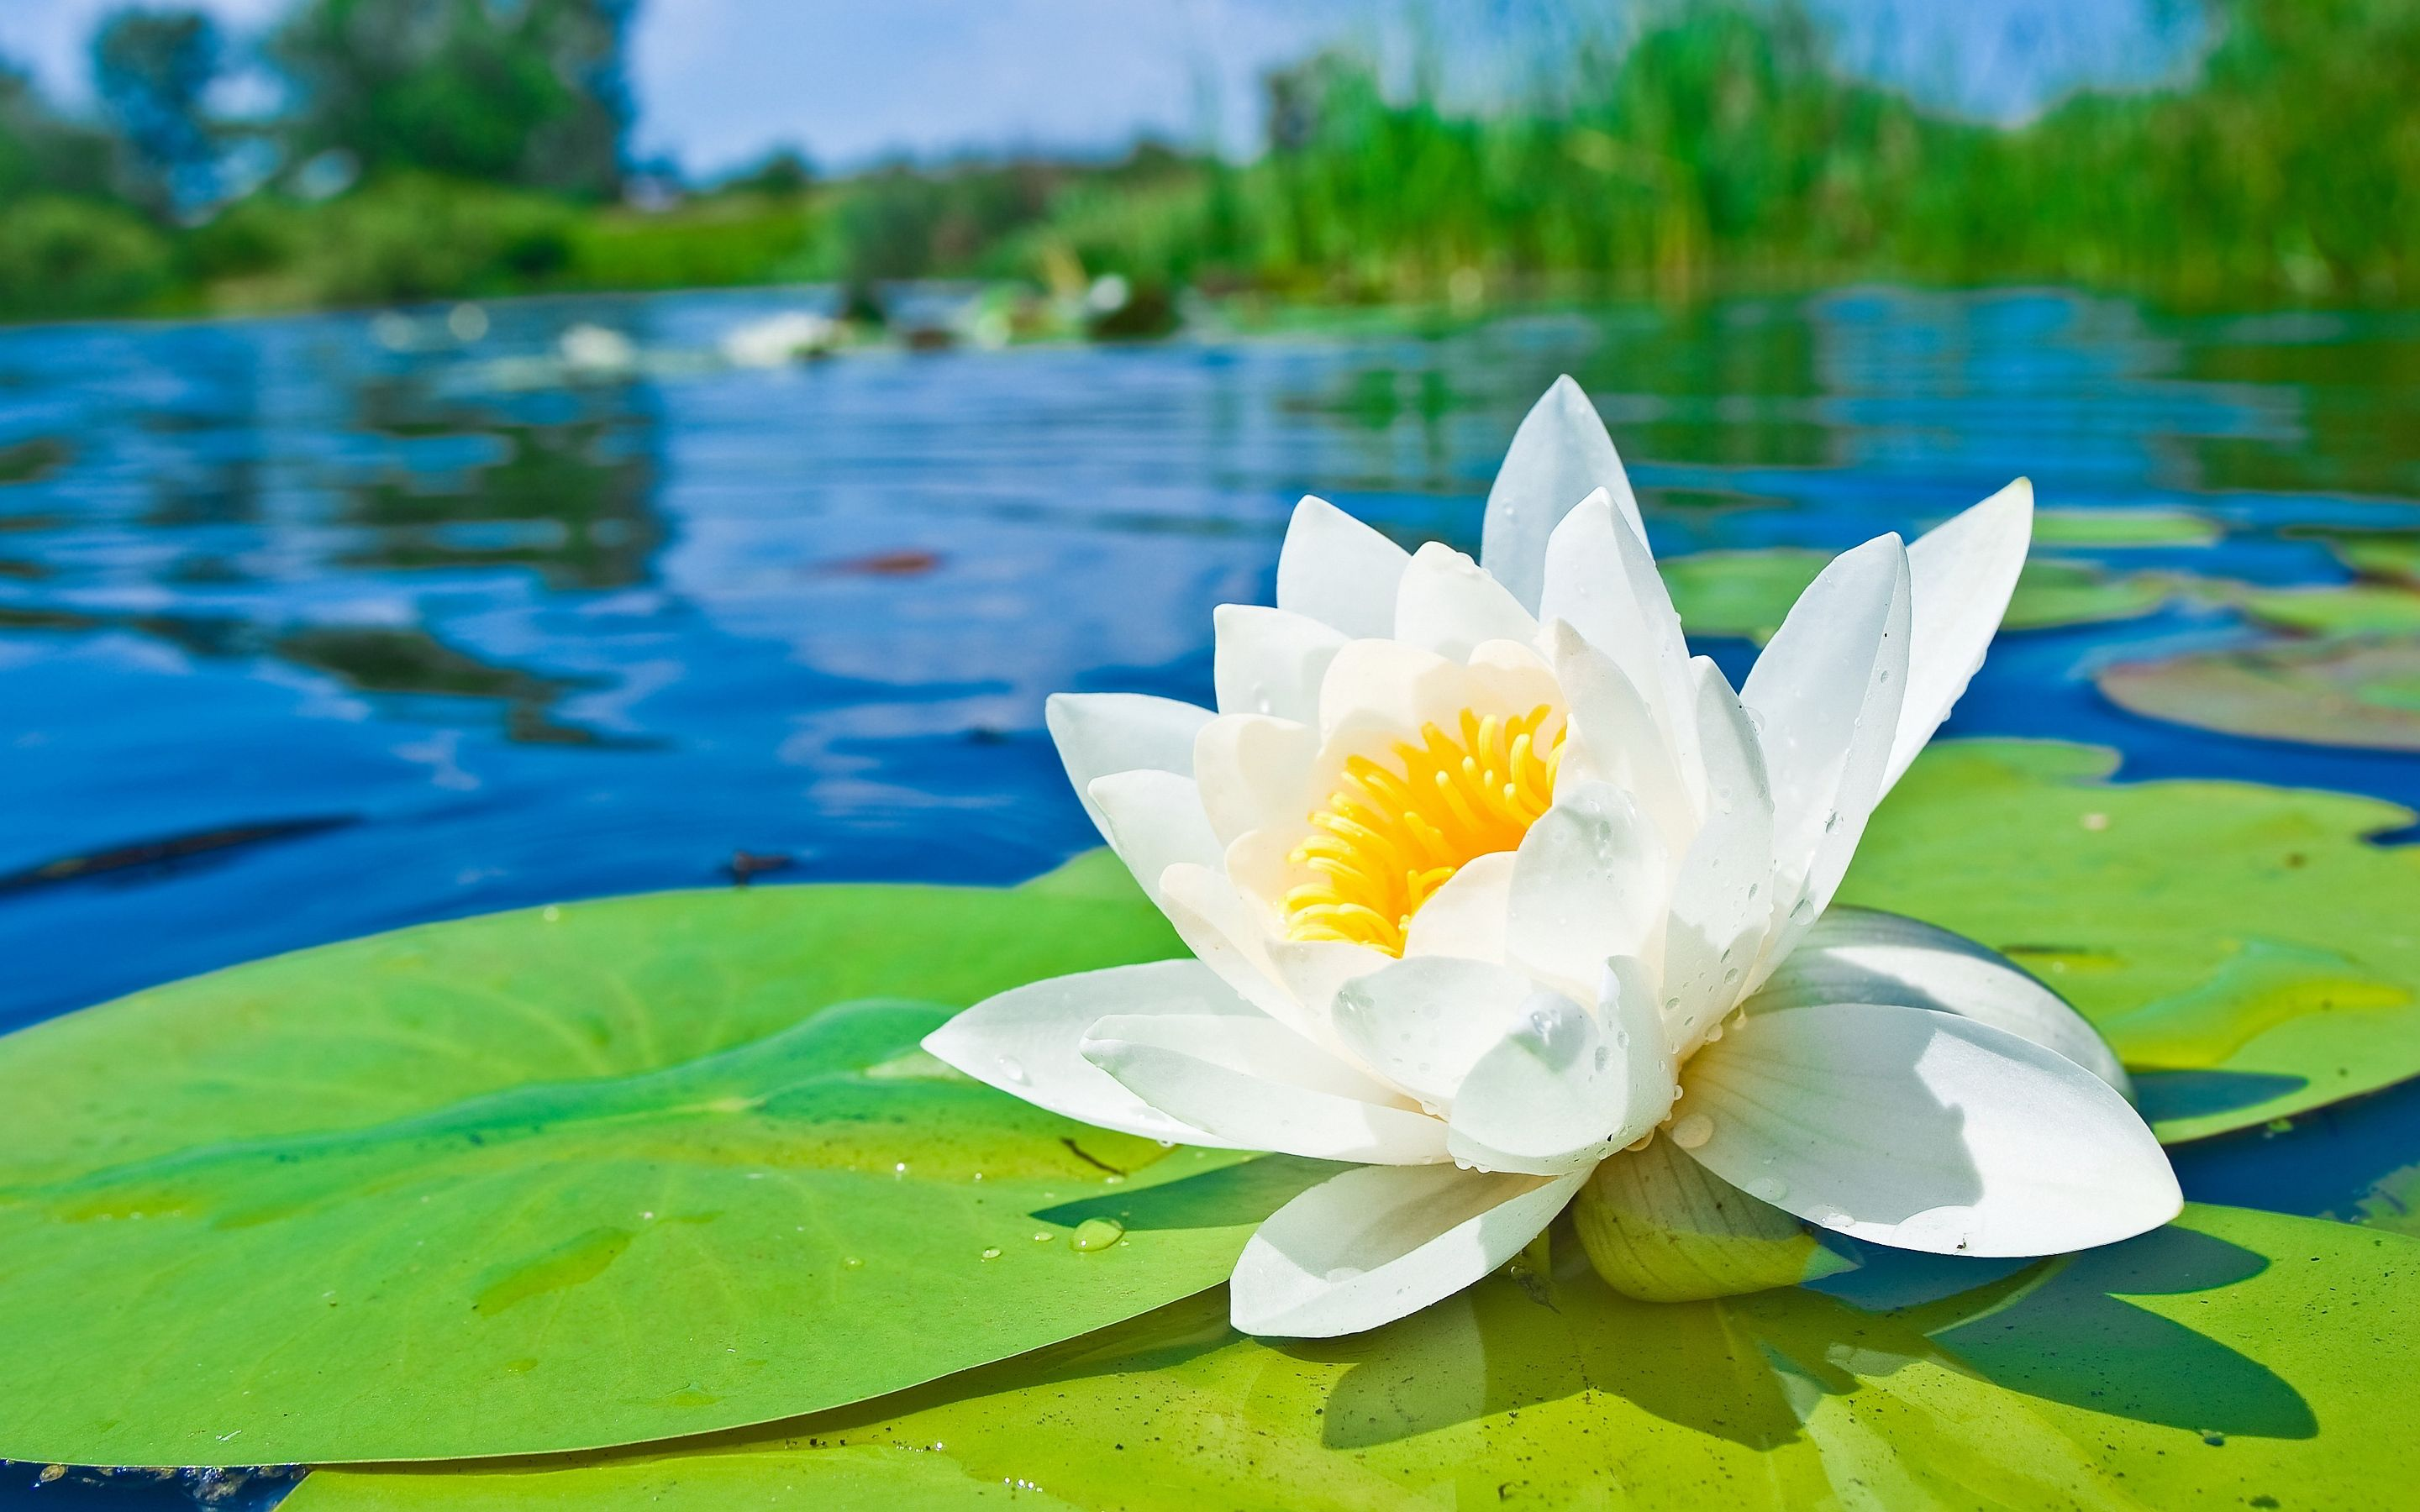 Water Lily Garden Water Lily Hd Wallpapers Pictures Photos Images Water Lily Hd Flower Wallpaper Lotus Flower Meaning Wallpaper lily white flower pond leaves